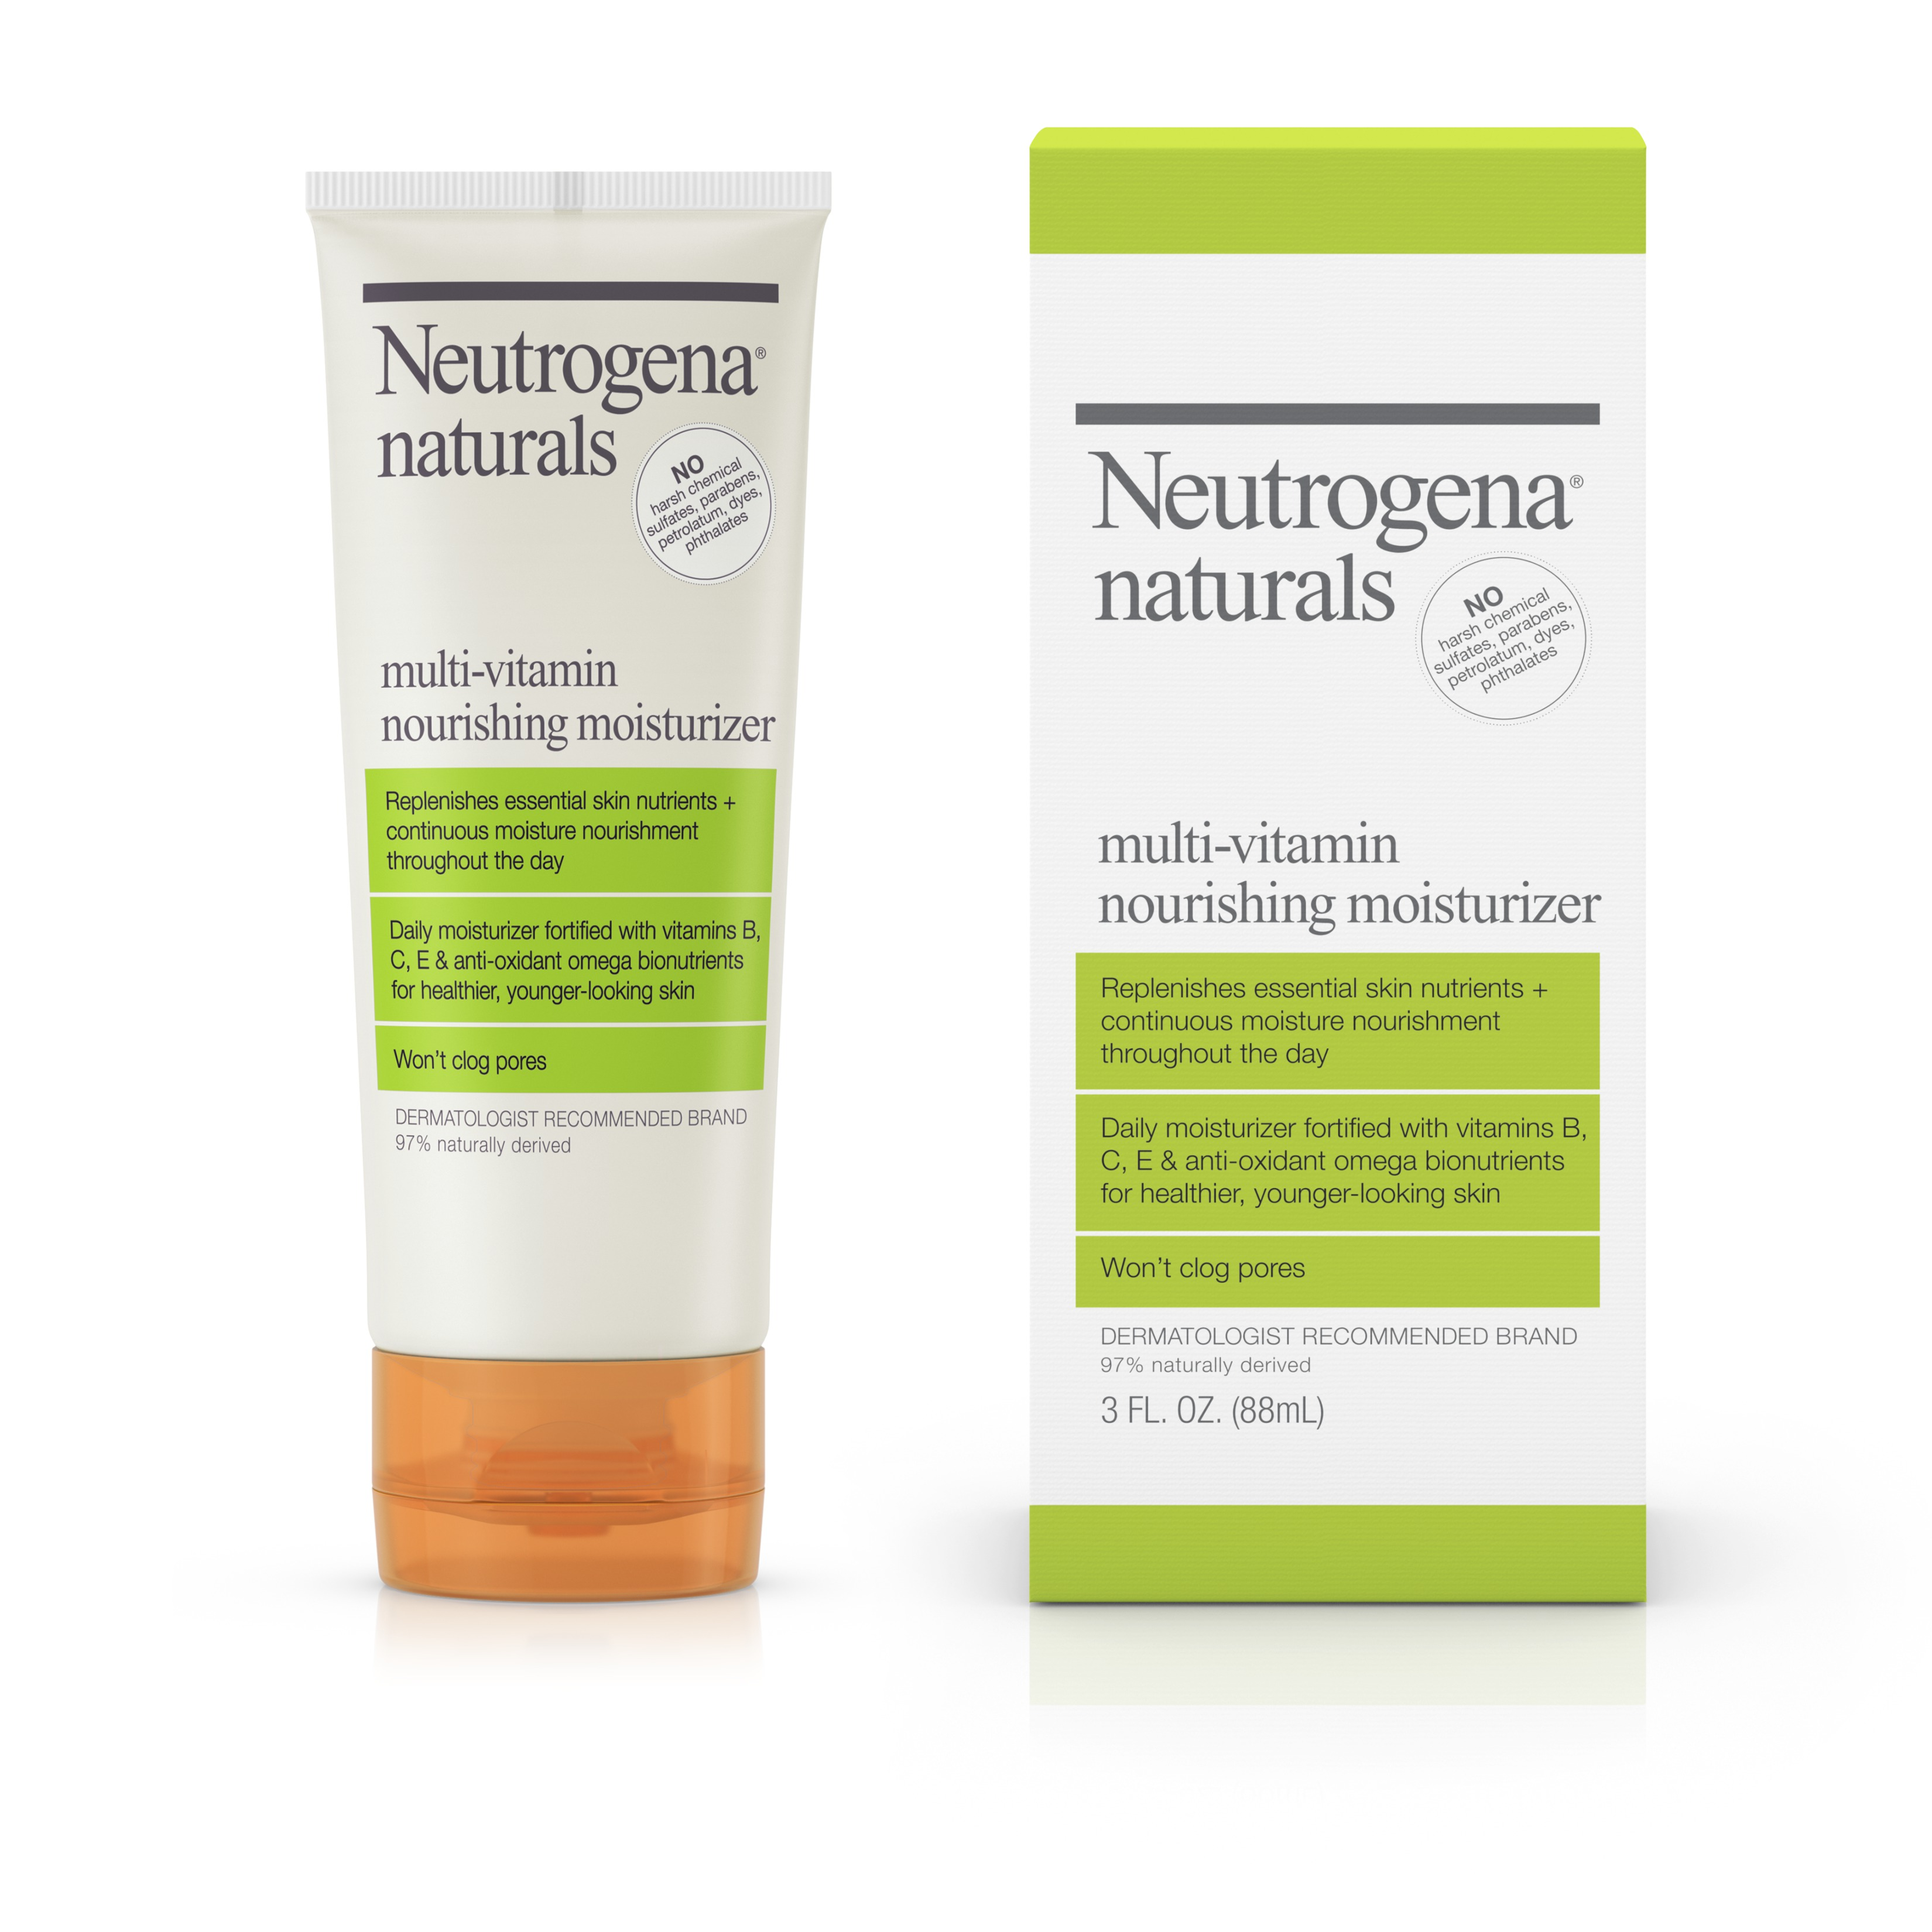 Neutrogena Naturals Multi-Vitamin Daily Face Moisturizer, 3 fl. oz